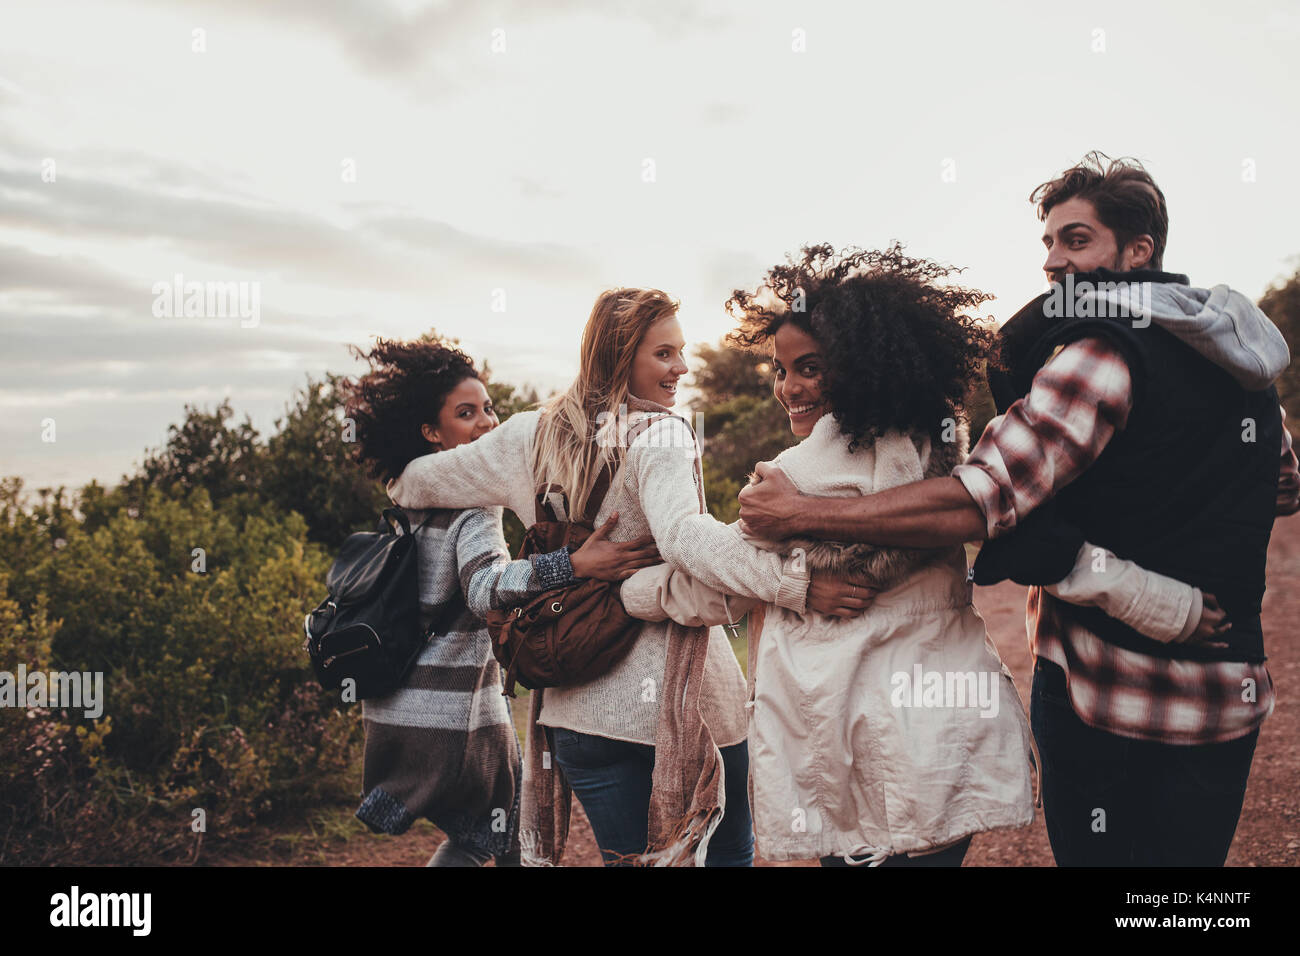 Friends hiking in nature. Group of man and women walking together in countryside. Happy young people turning around and looking at camera. - Stock Image